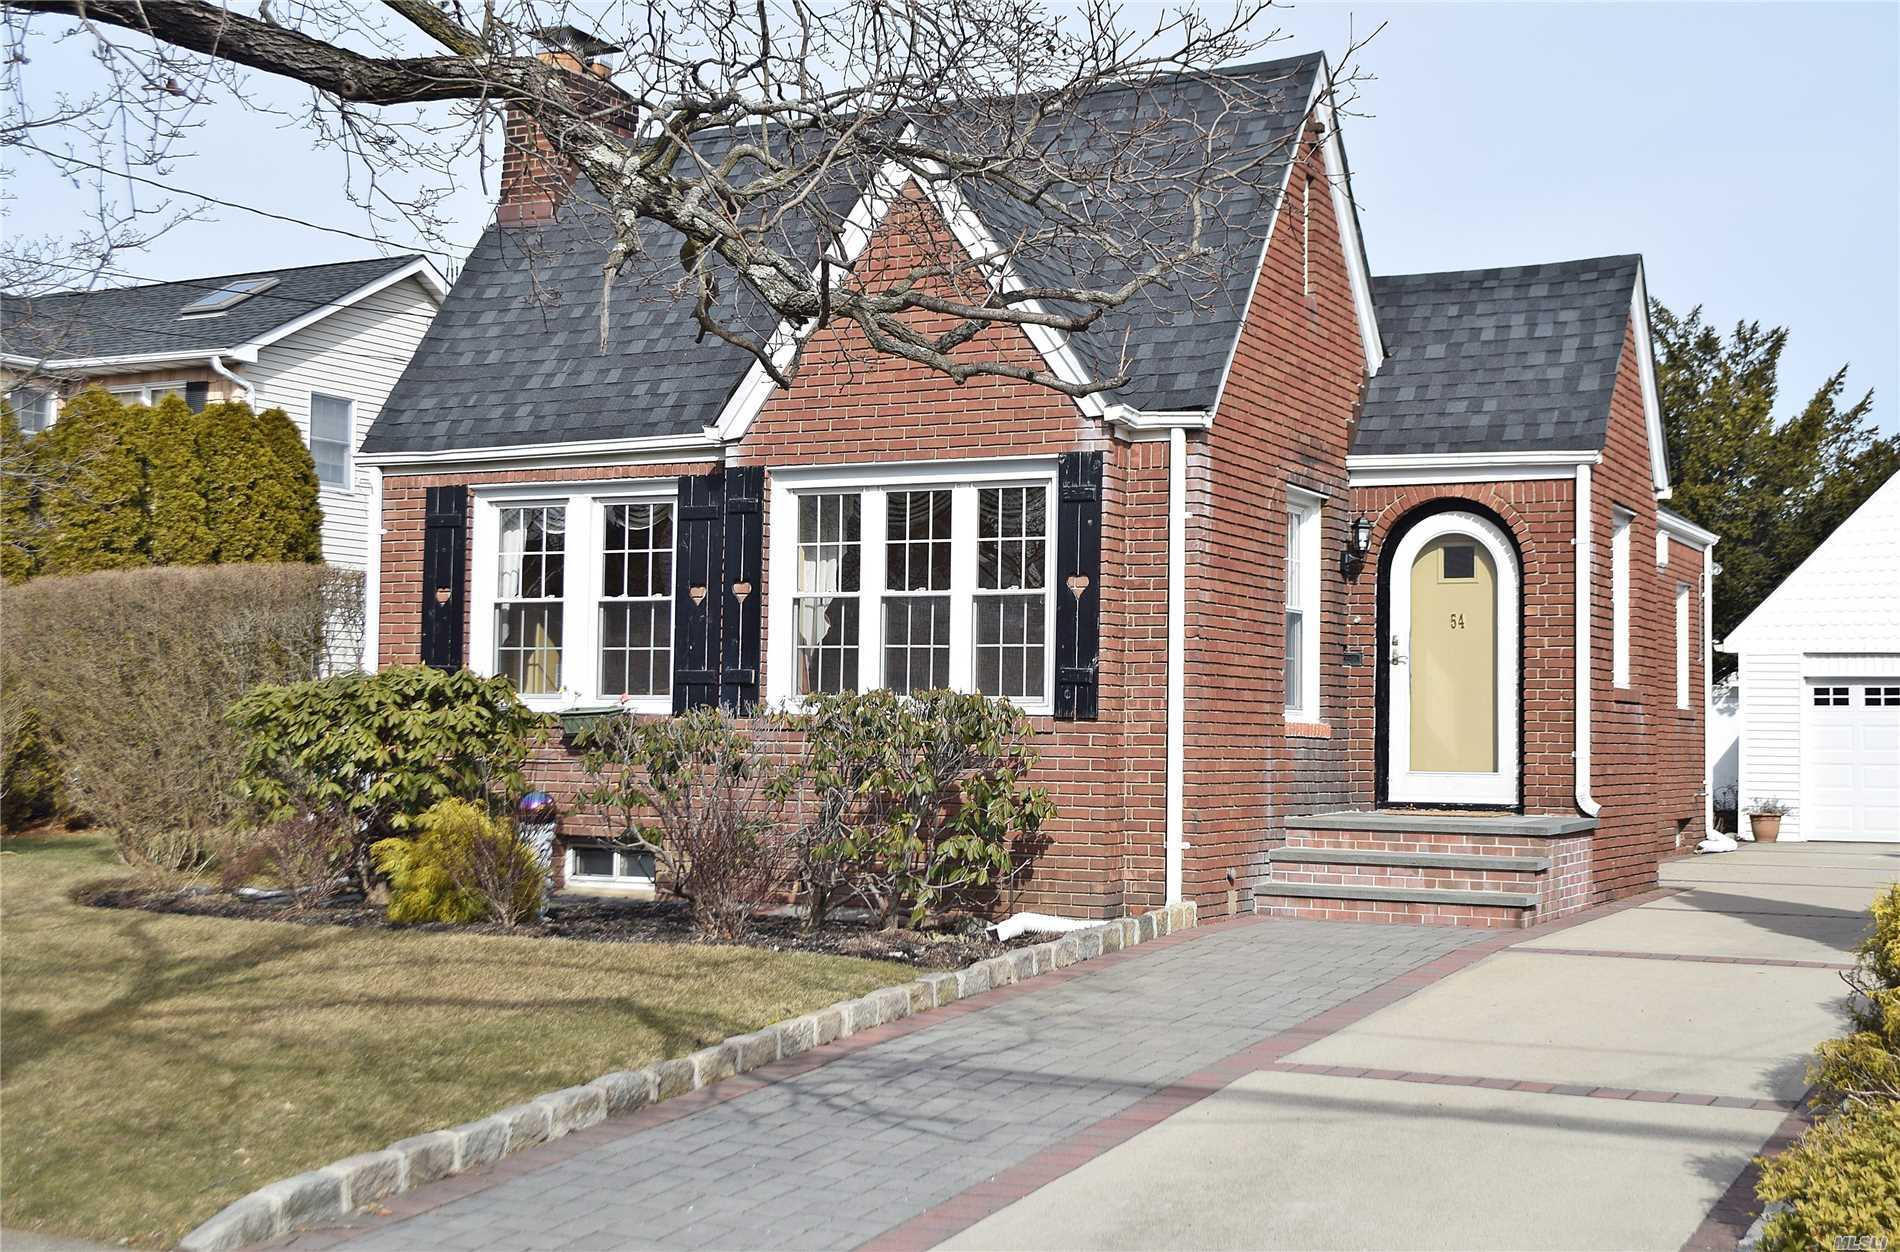 Unique One Of A Kind Picture Perfect And Charming Brick English Style Home With Large Private Yard And Located On Tree Lined Street in School District 13. Great First Home Or To Downsize, Also Offers Ample Property for future Expansion. Truly a special home and a must see.